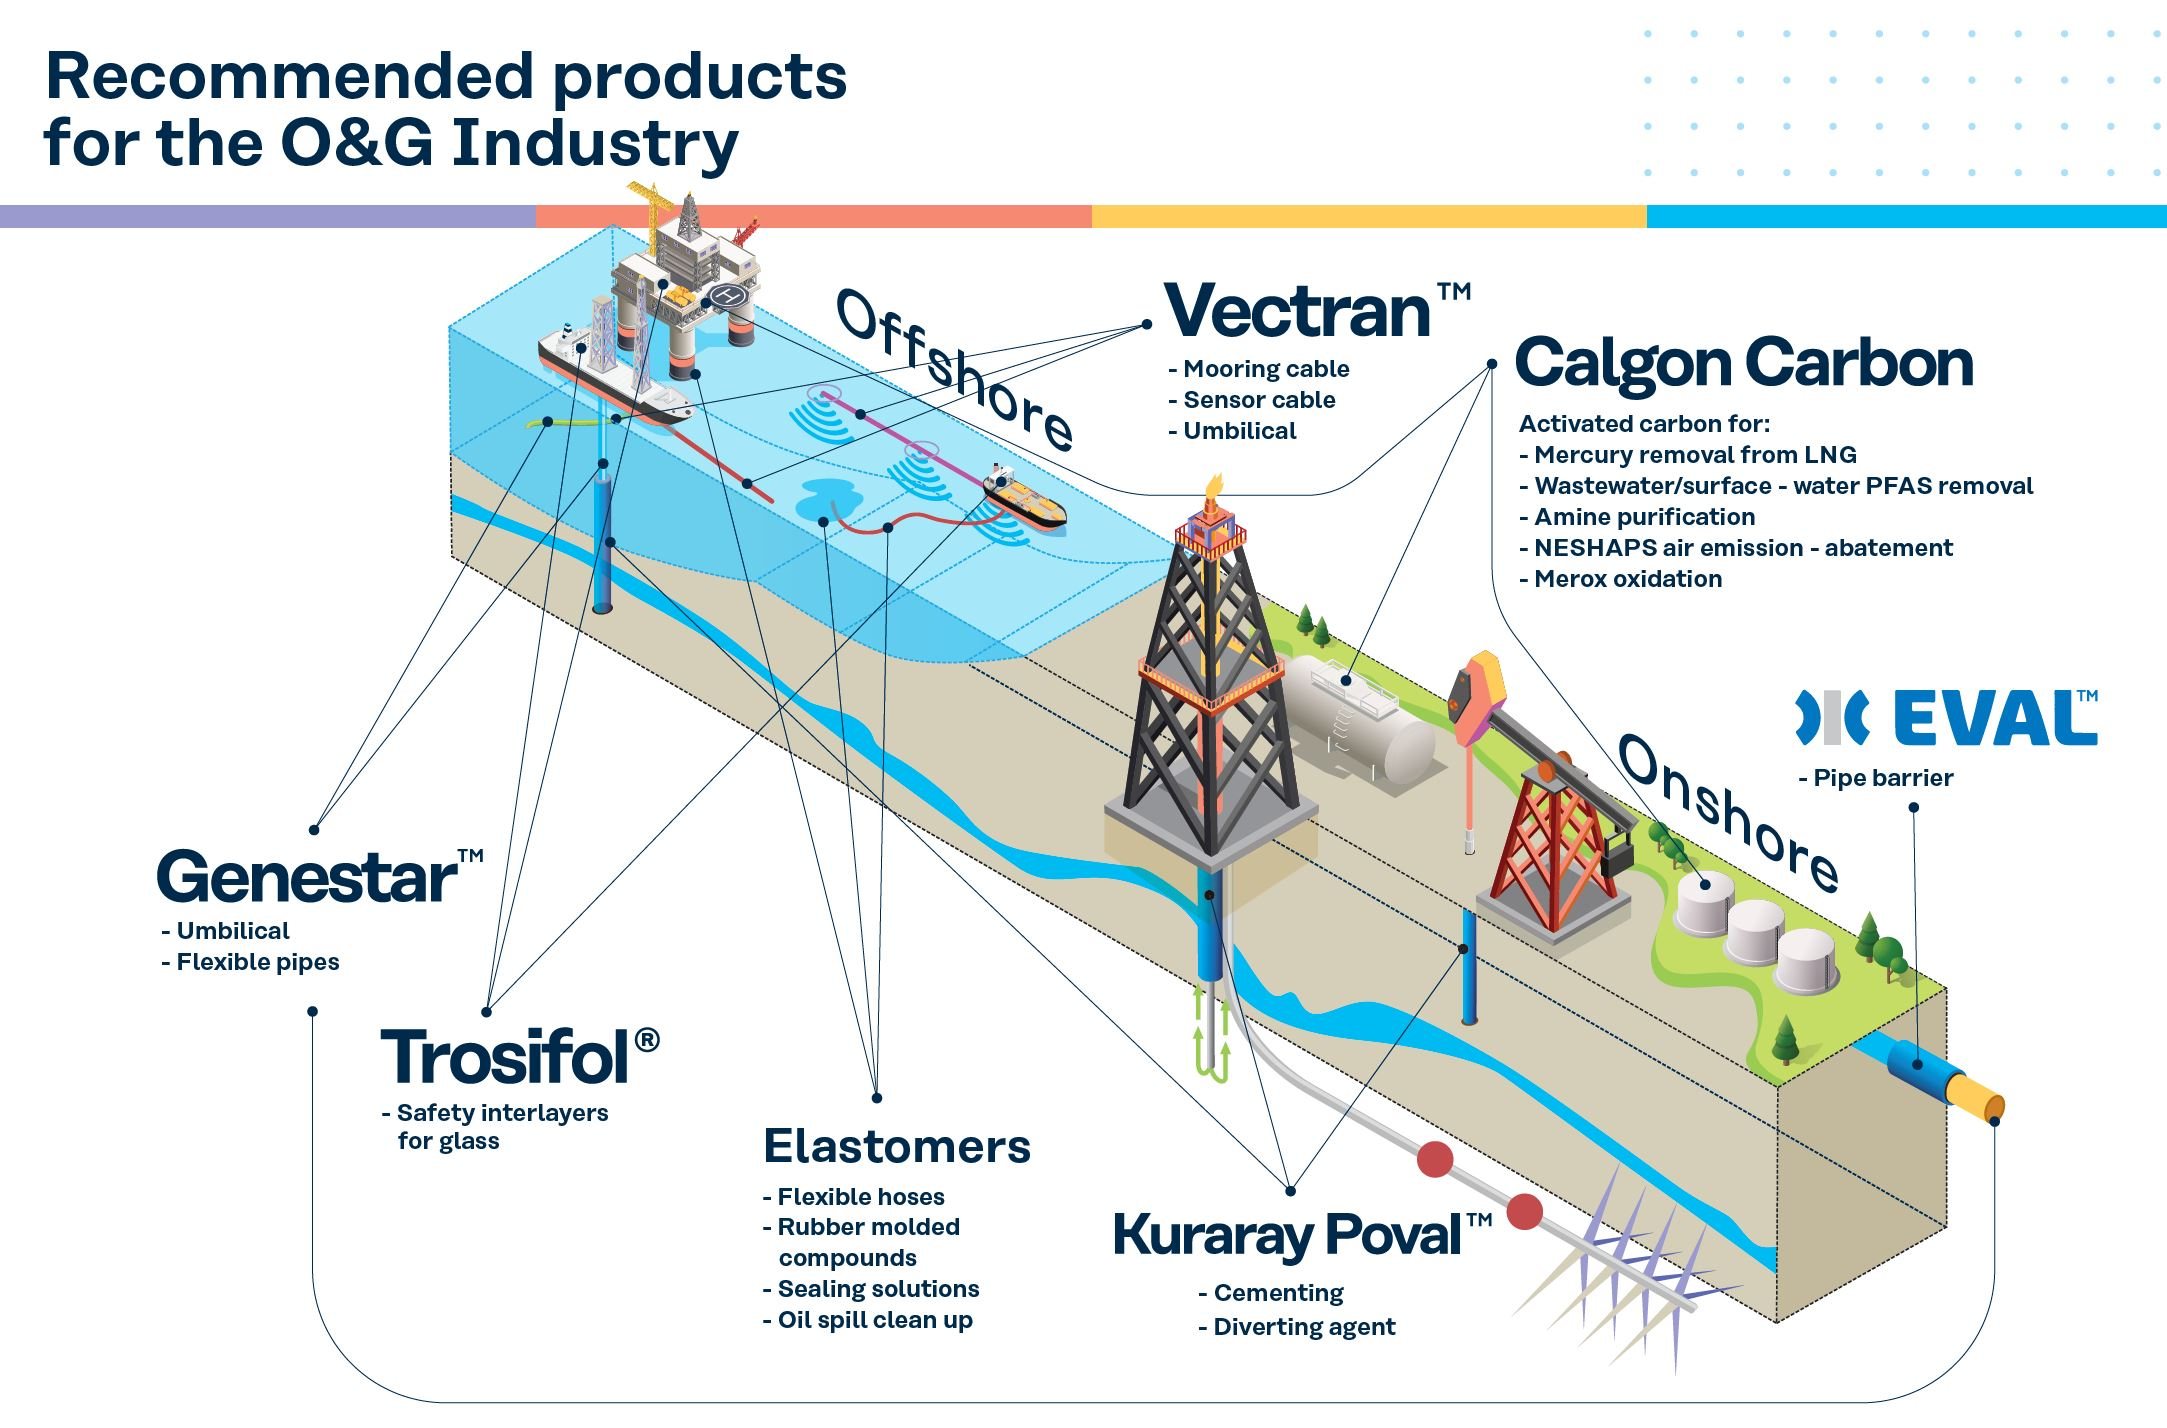 kuraray products oil and gas industry